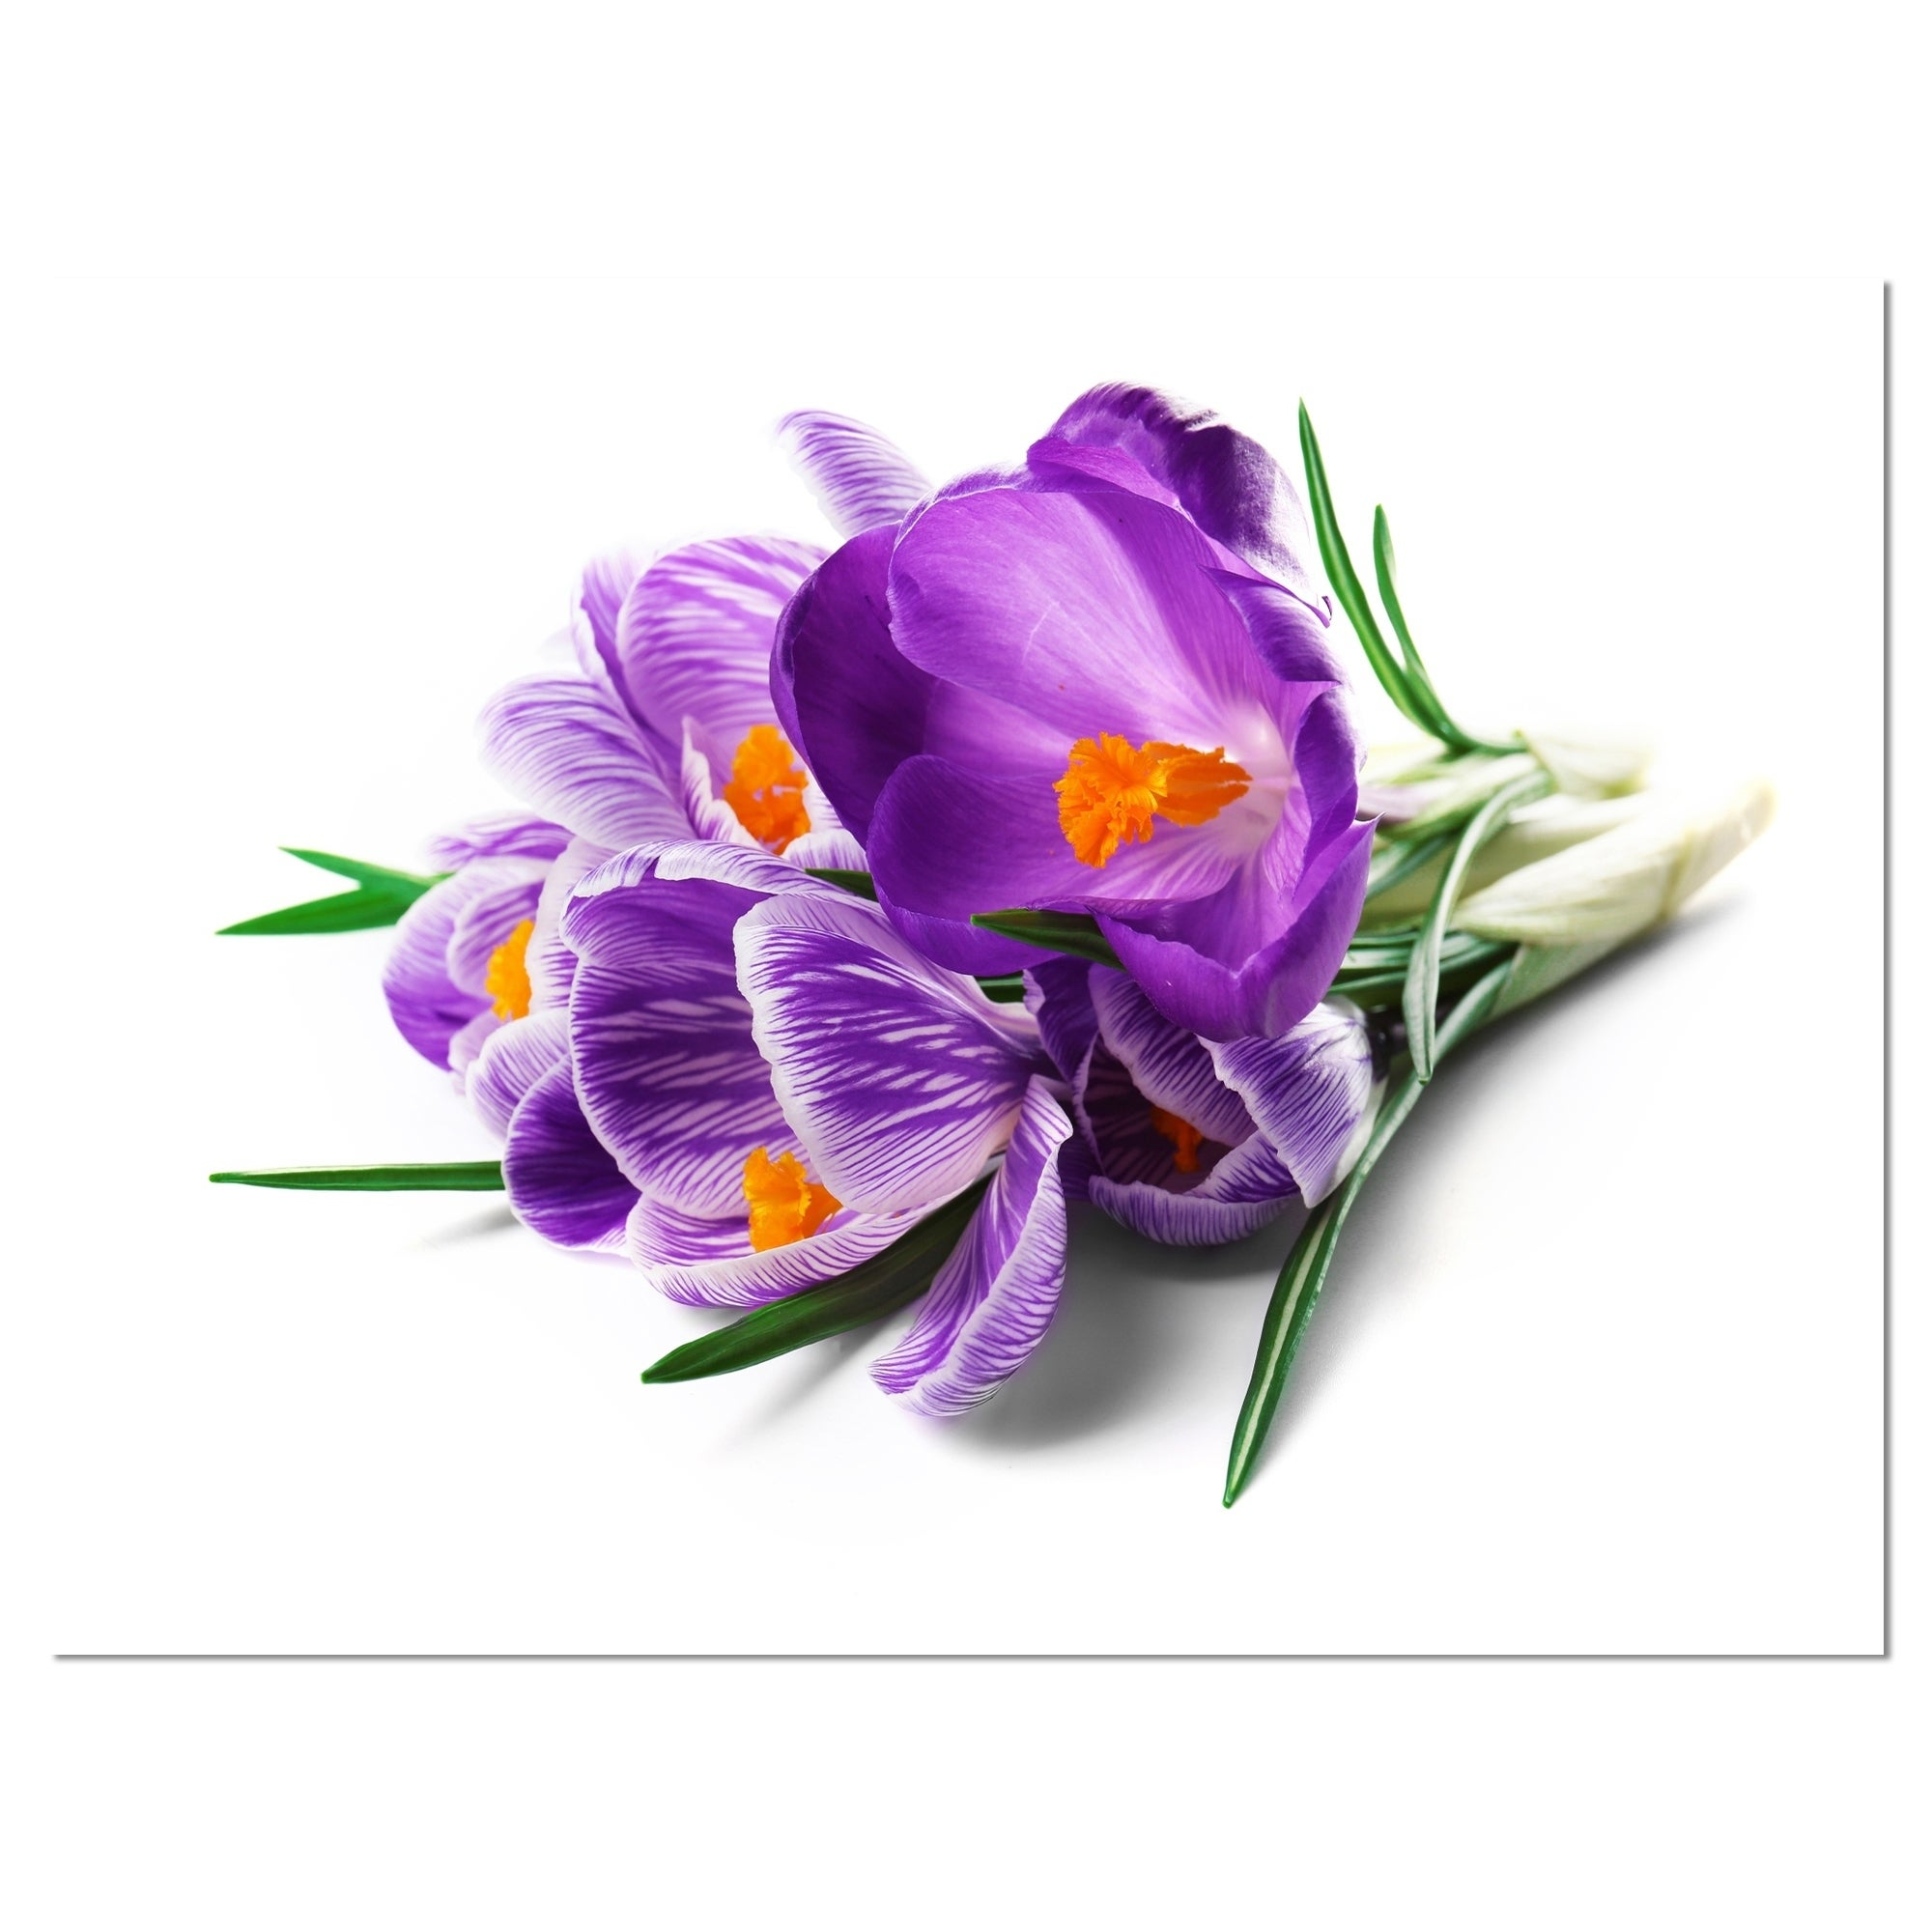 Shop Bunch Of Blooming Crocus Flowers Large Floral Wall Art